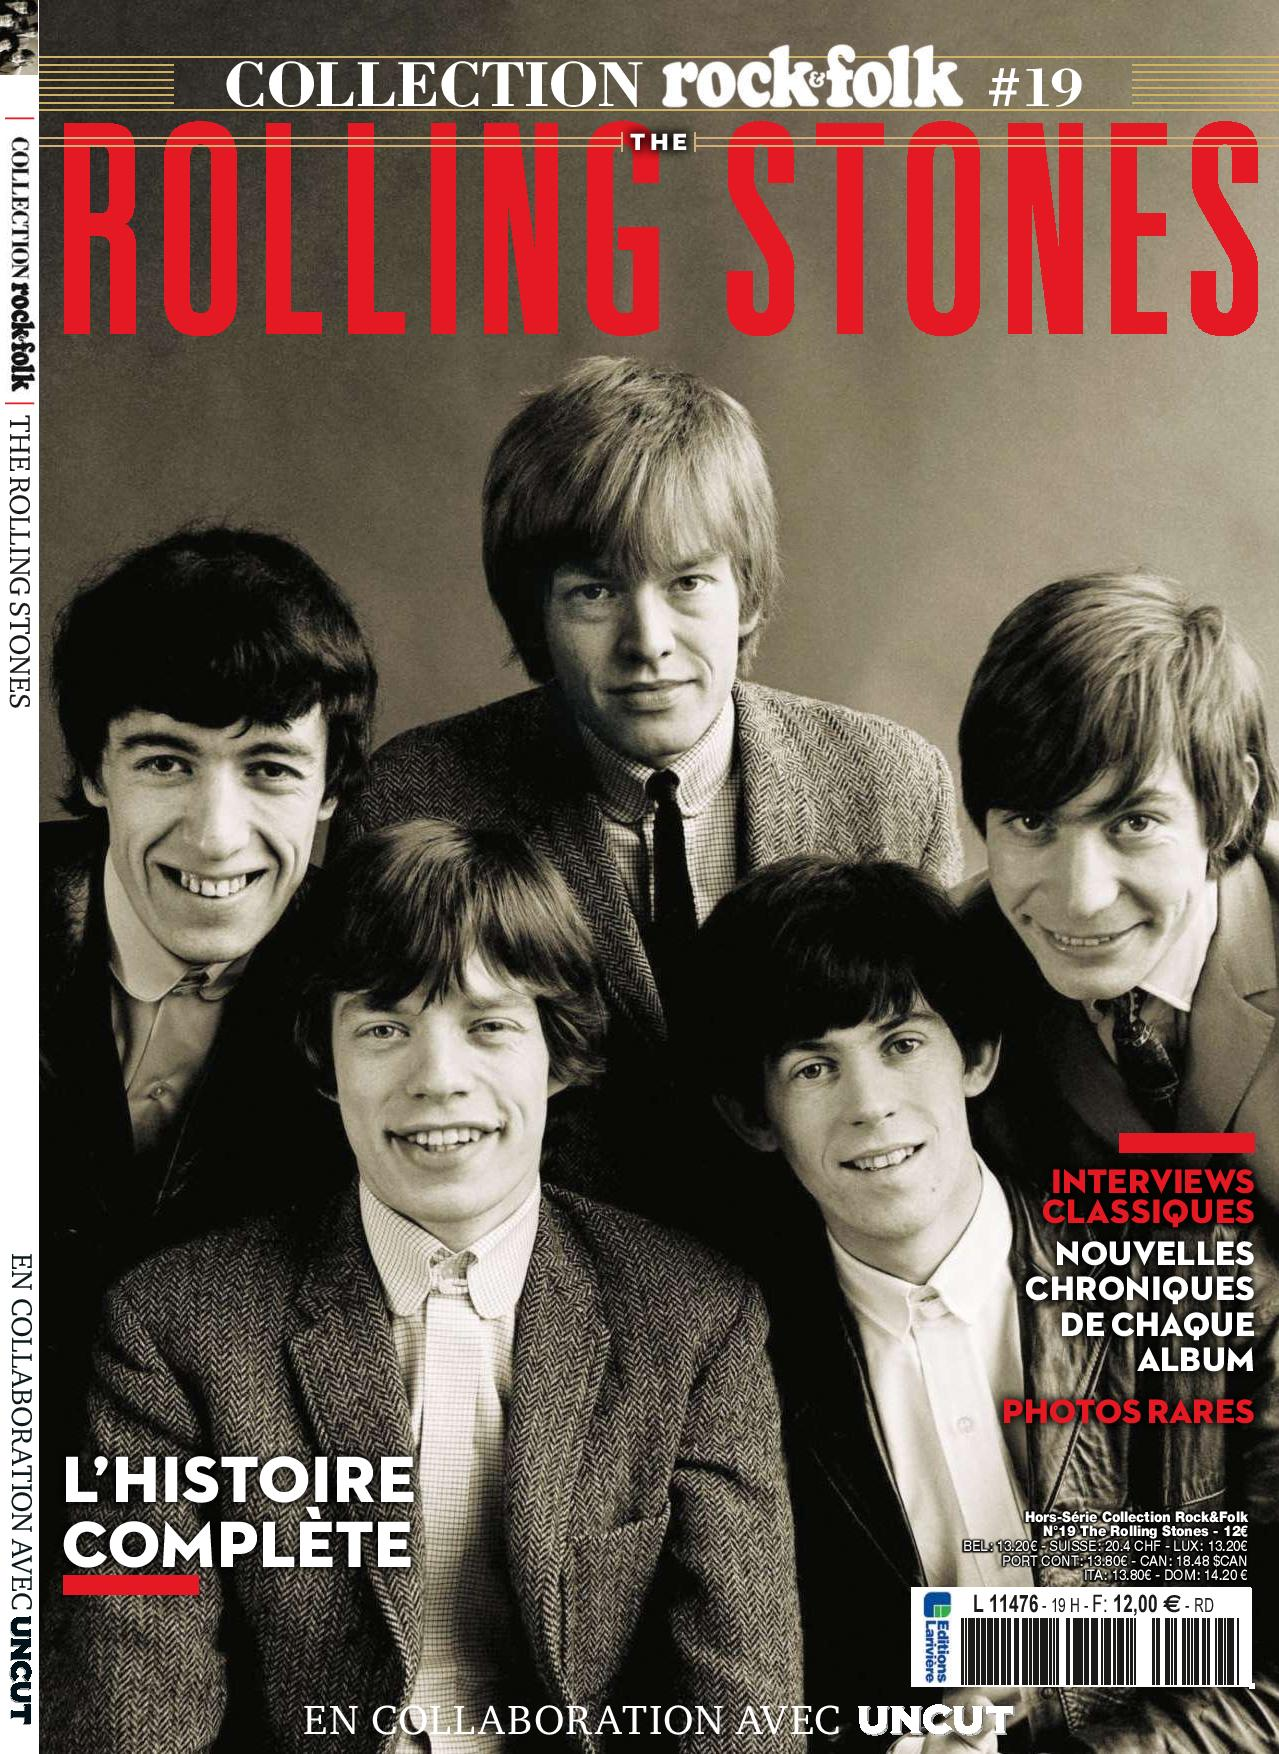 The Rolling Stones Rock&Folk collection